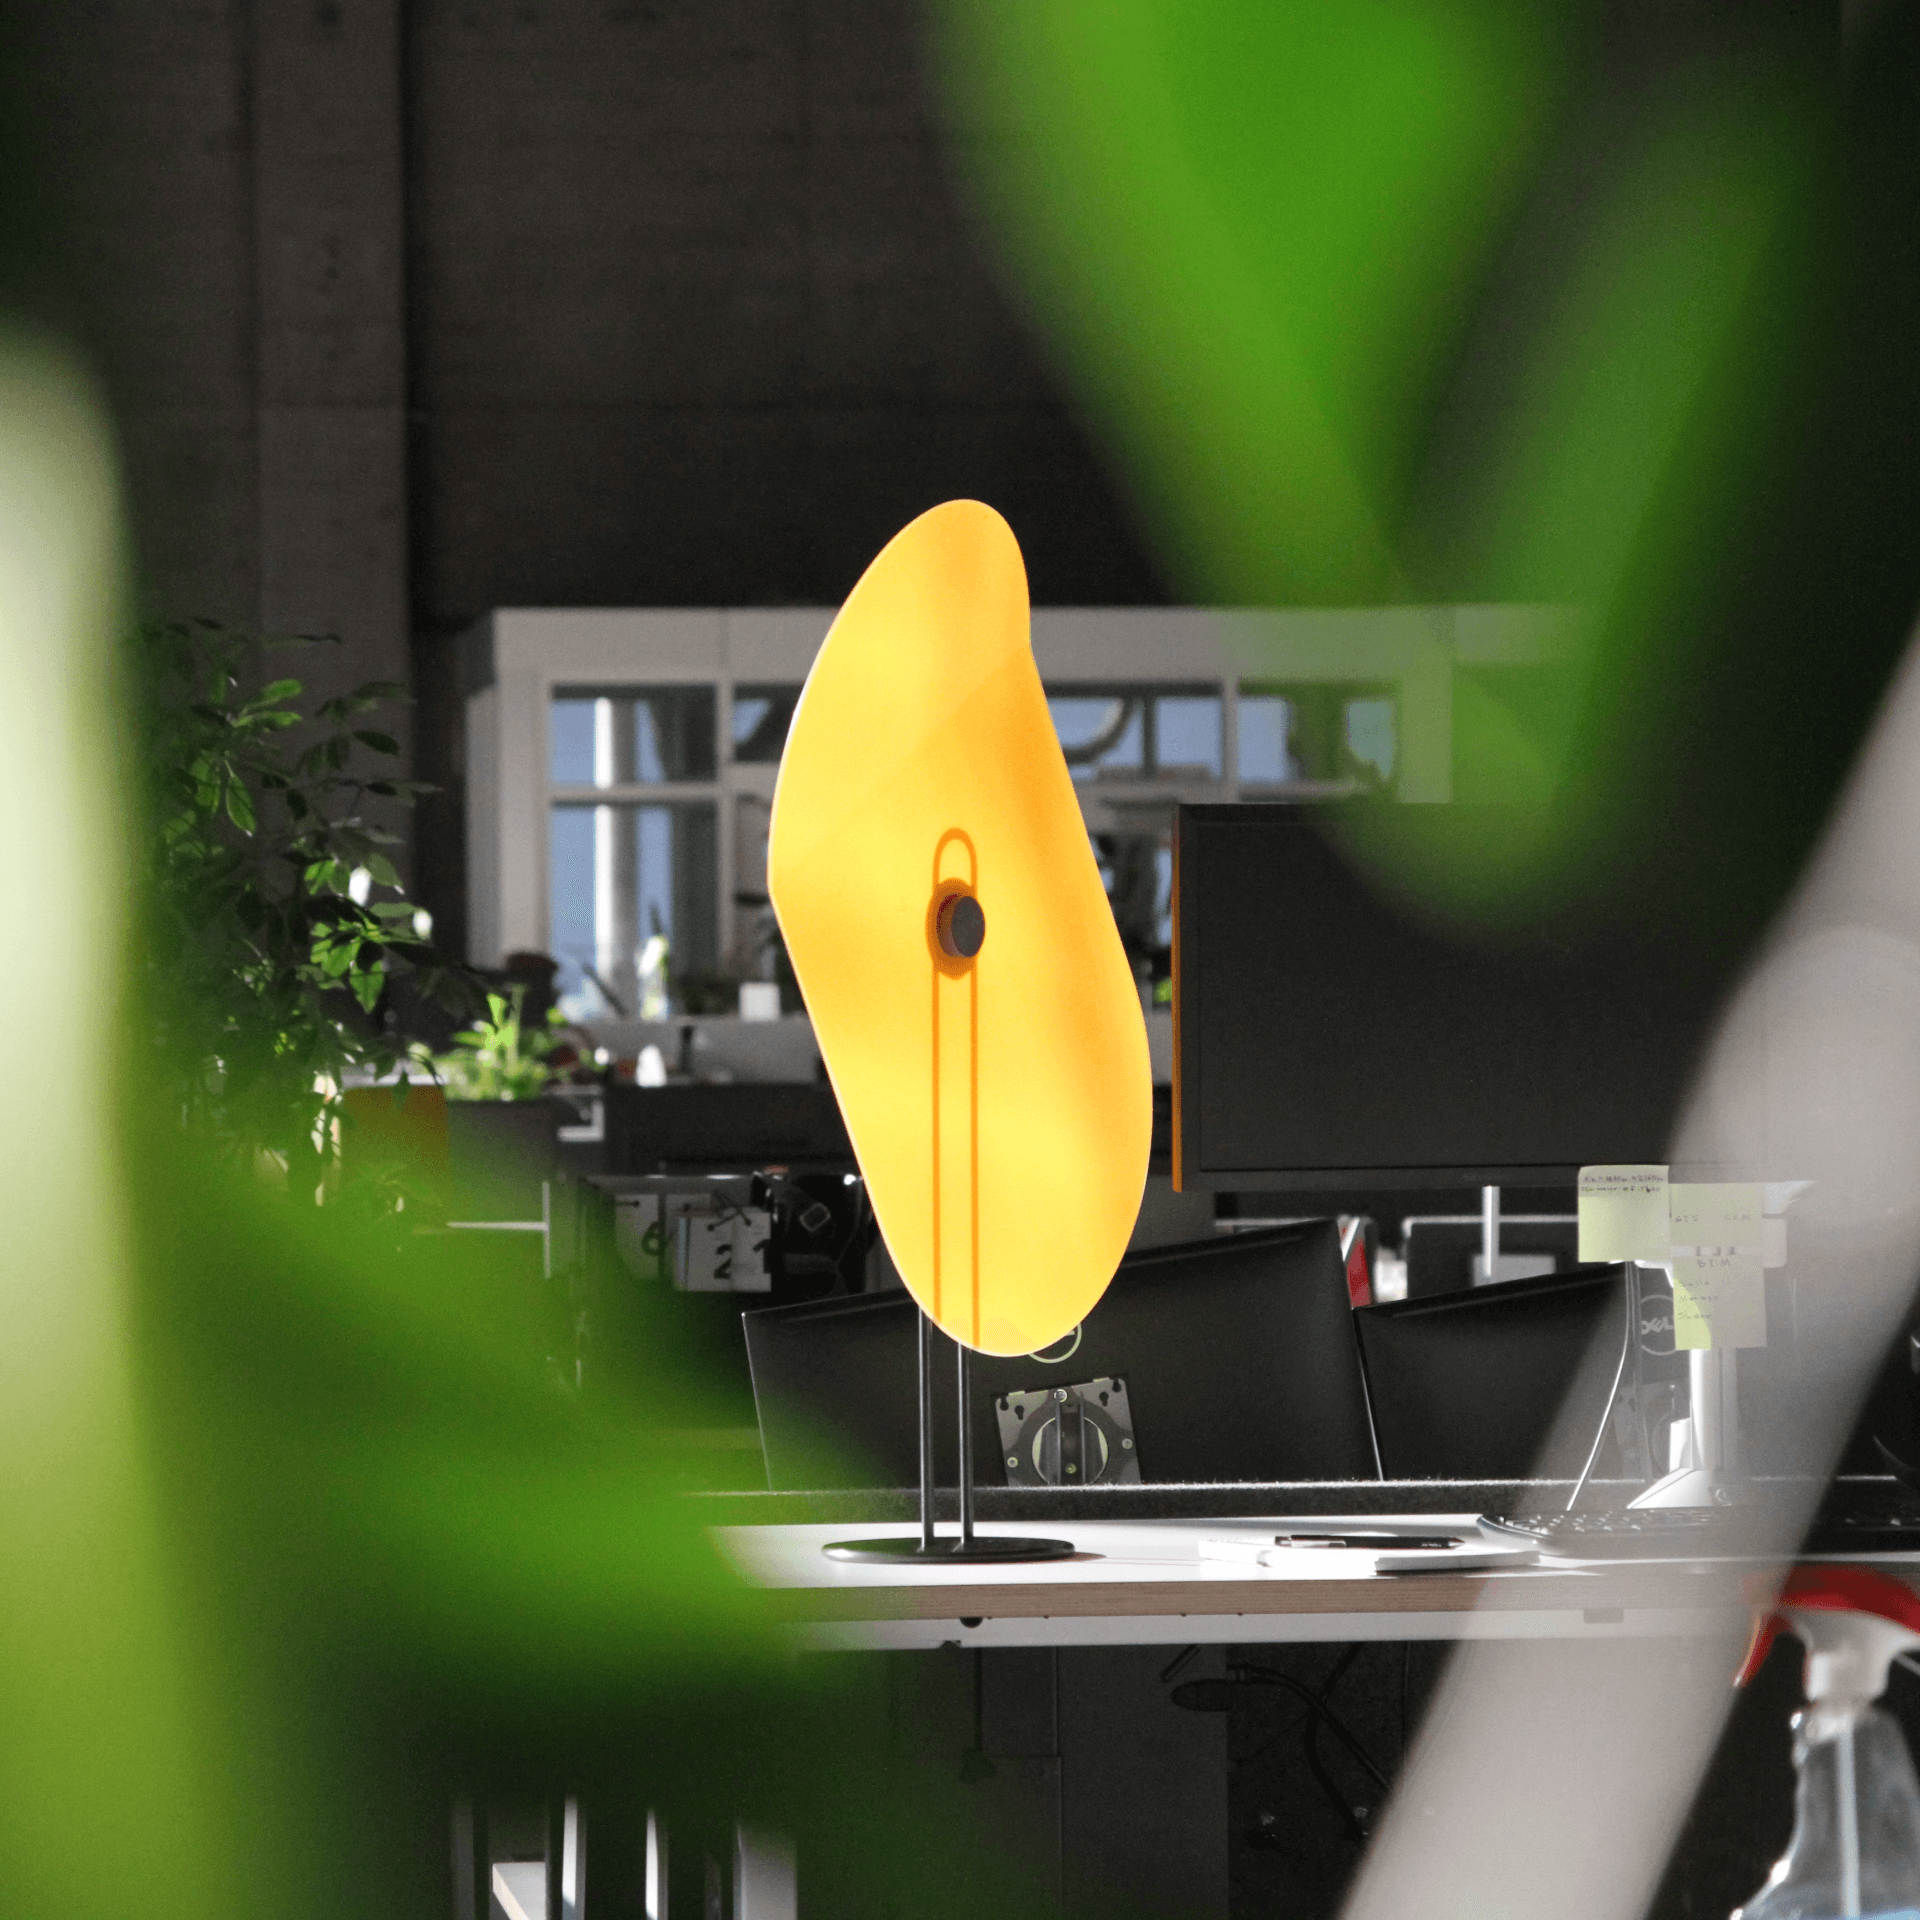 A glowing yellow Taskshade in the center of a photograph.